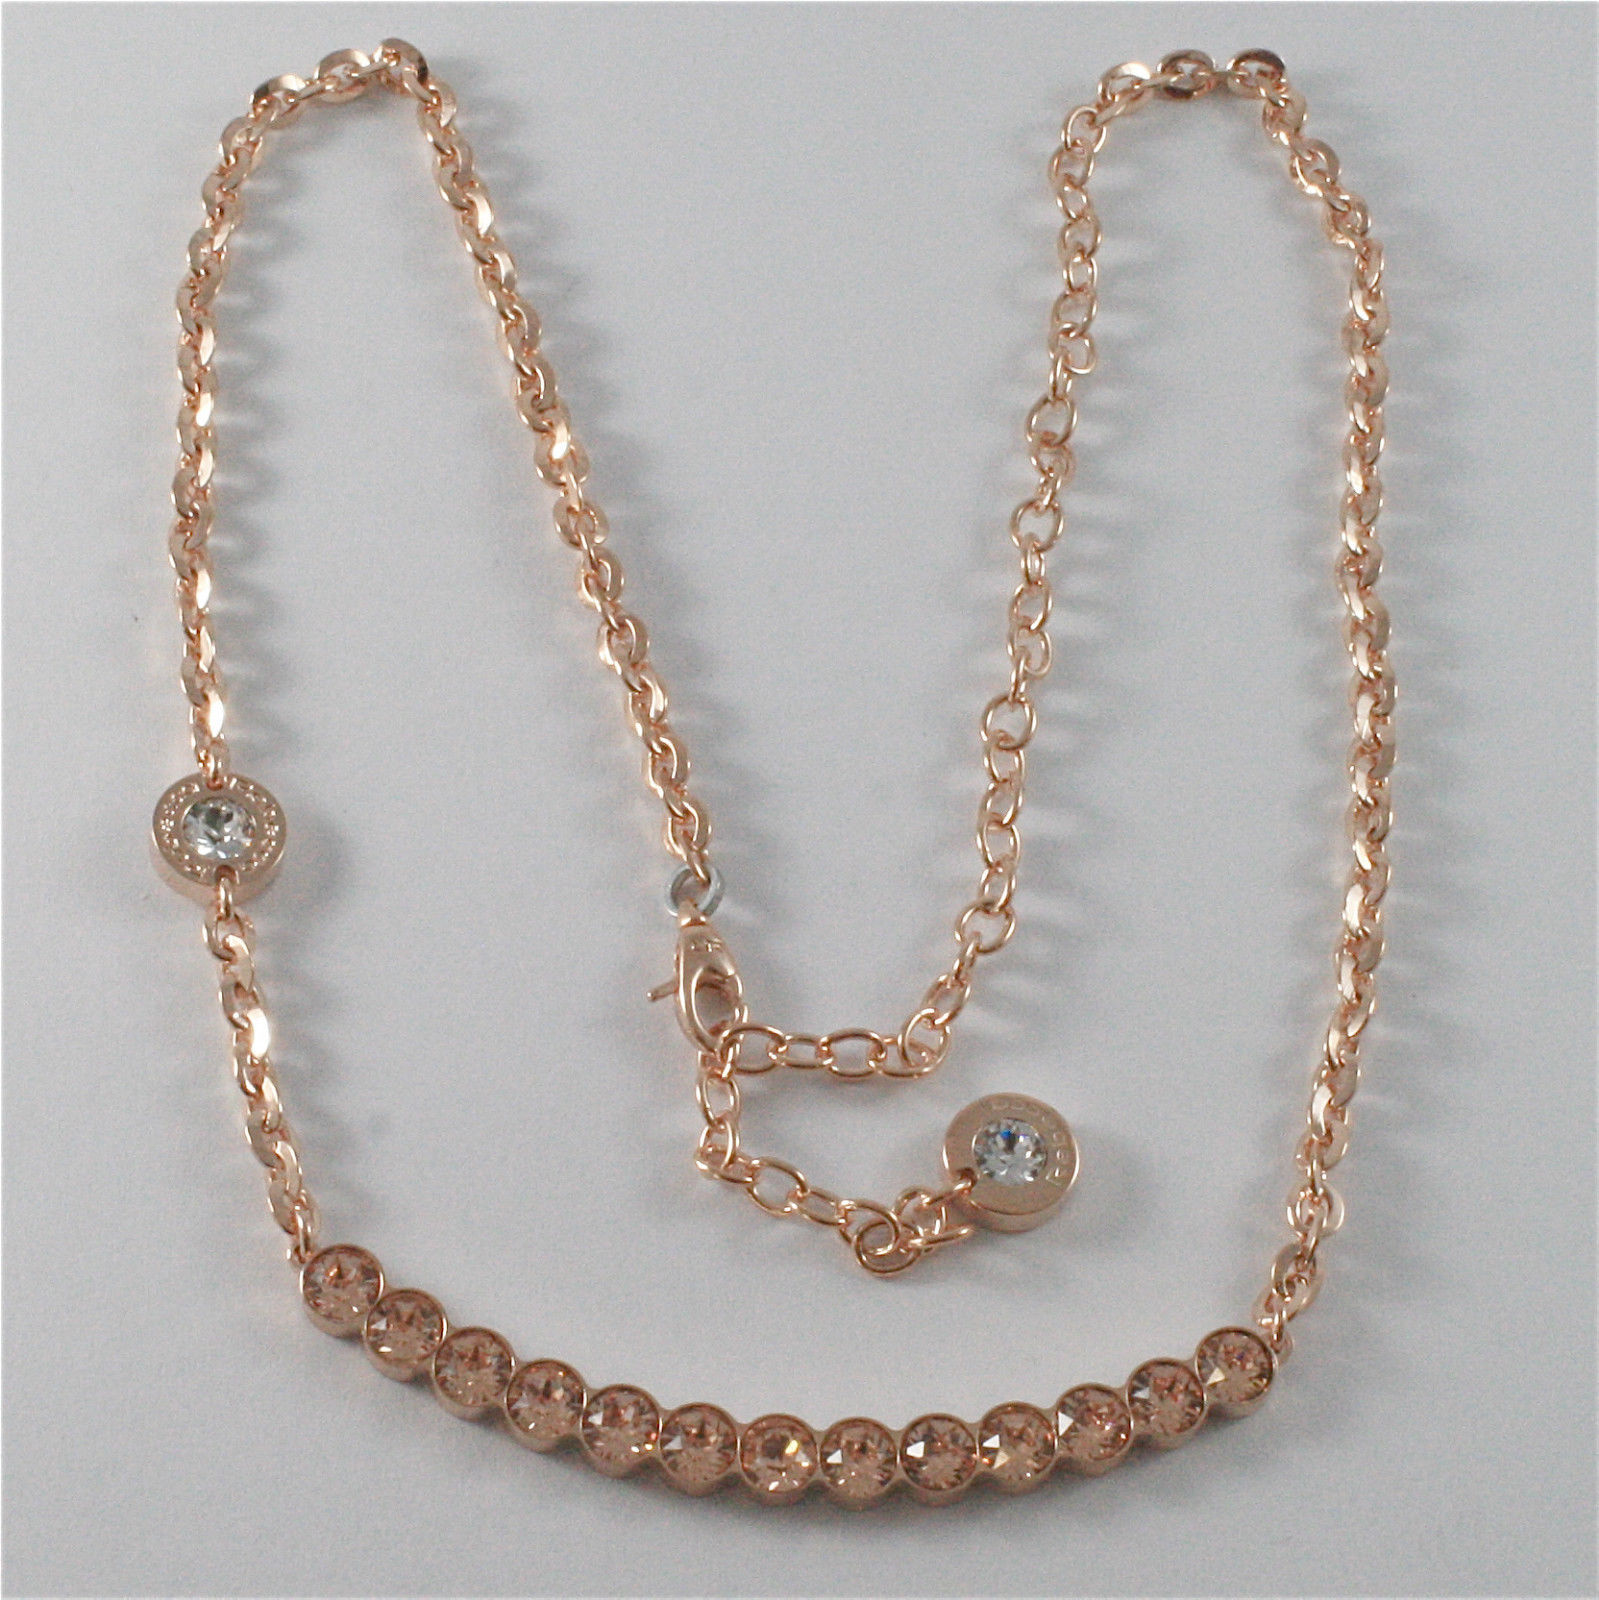 ROSE GOLD PLATED BRONZE REBECCA TENNIS NECKLACE BPBKRP14 MADE IN ITALY 18.90 IN